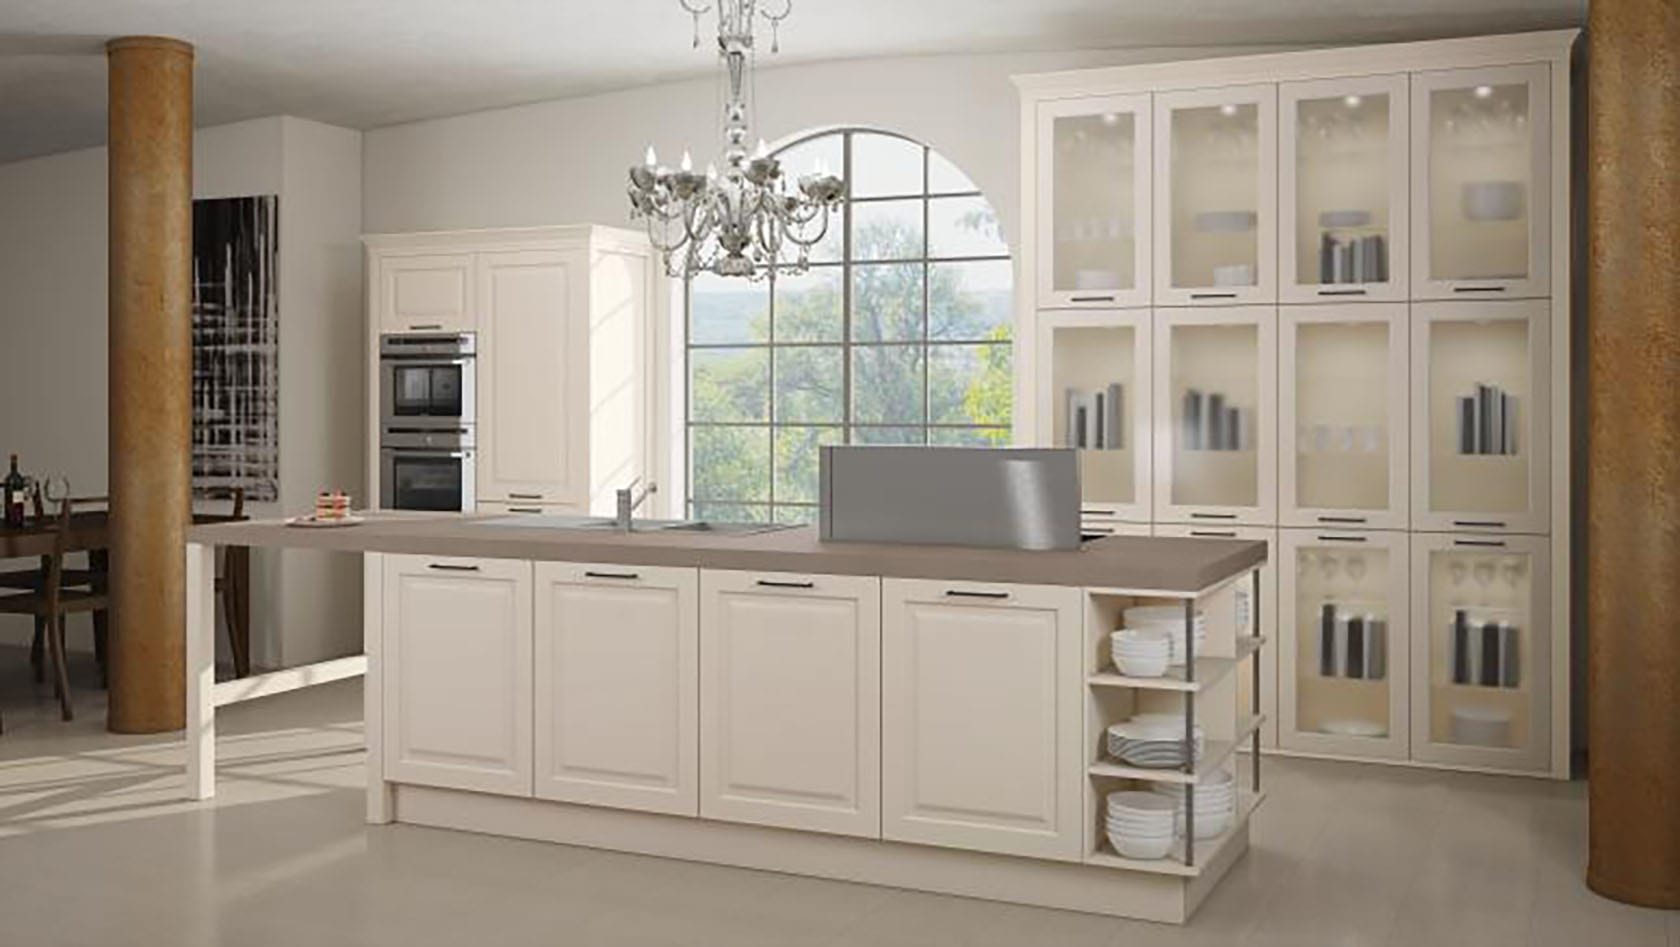 German kitchen brand designs designer kitchens for German kitchen cabinets